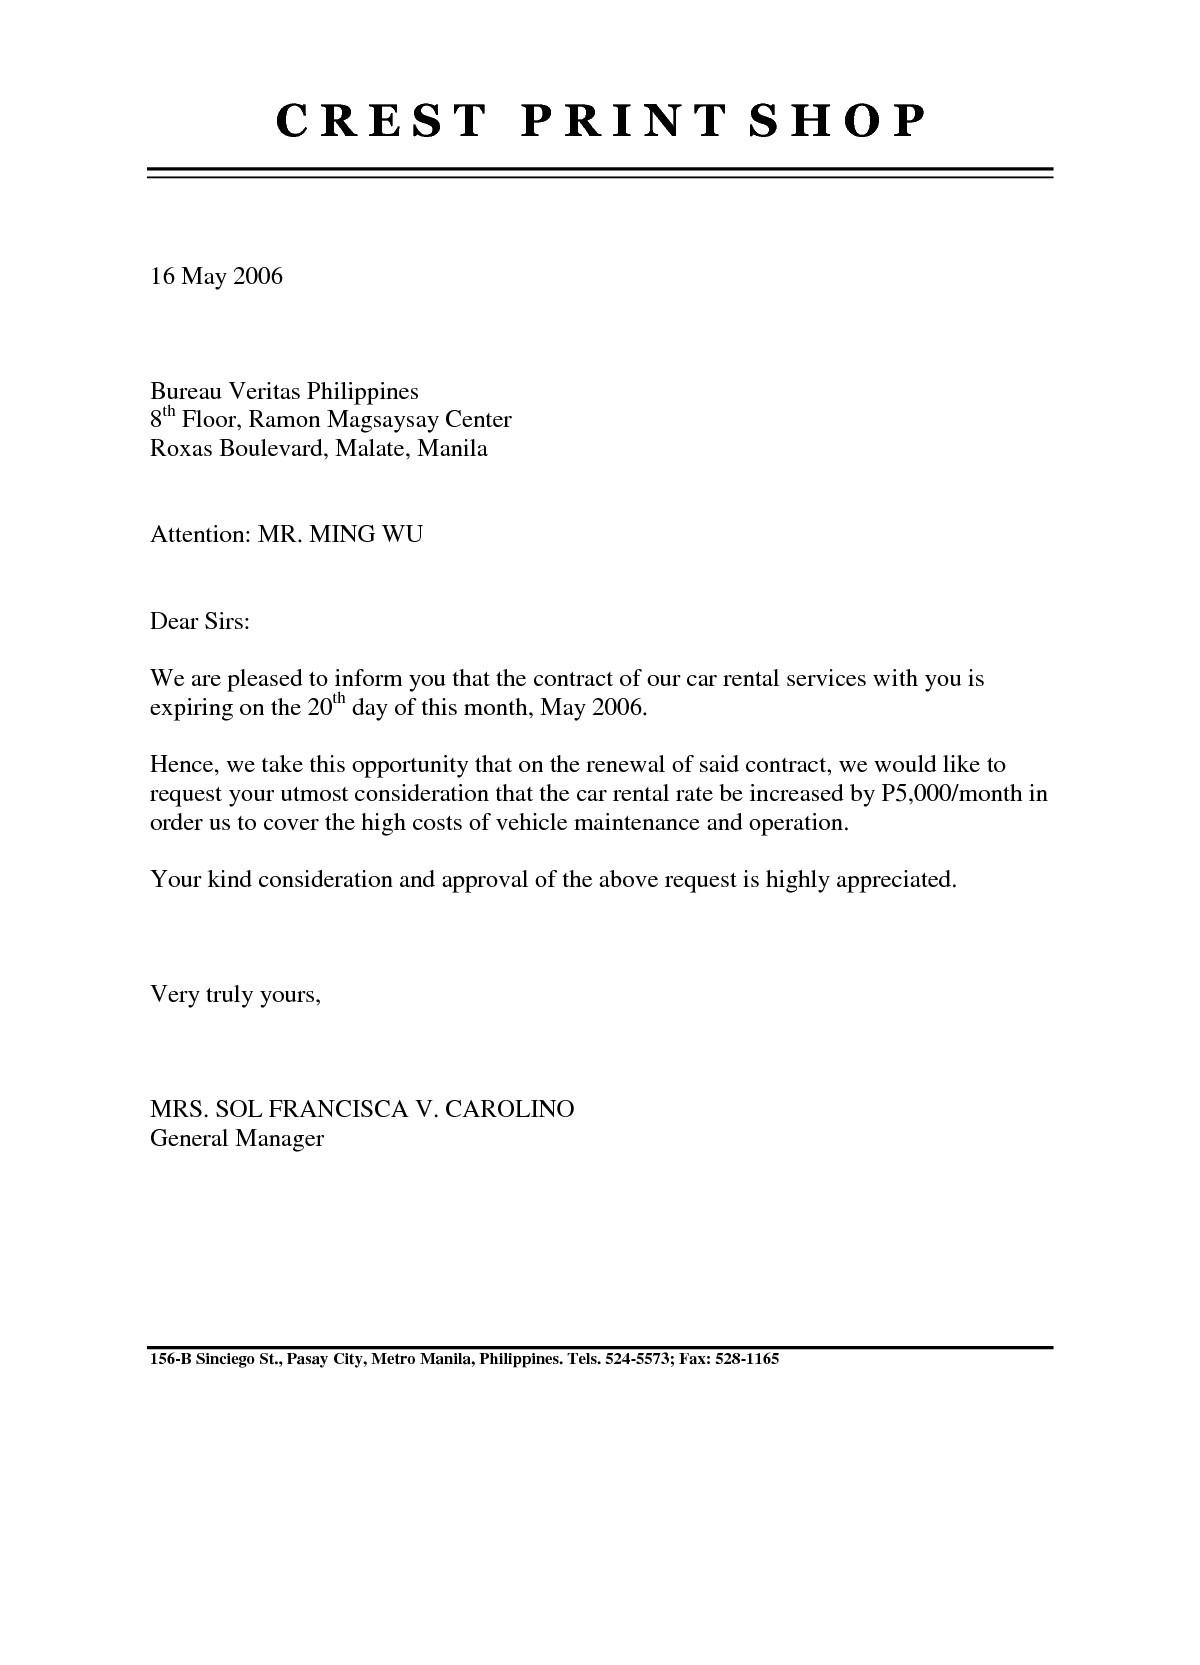 General Cover Letter Template - Seeking for Job Letter Sample Best Sample A General Cover Letter 31